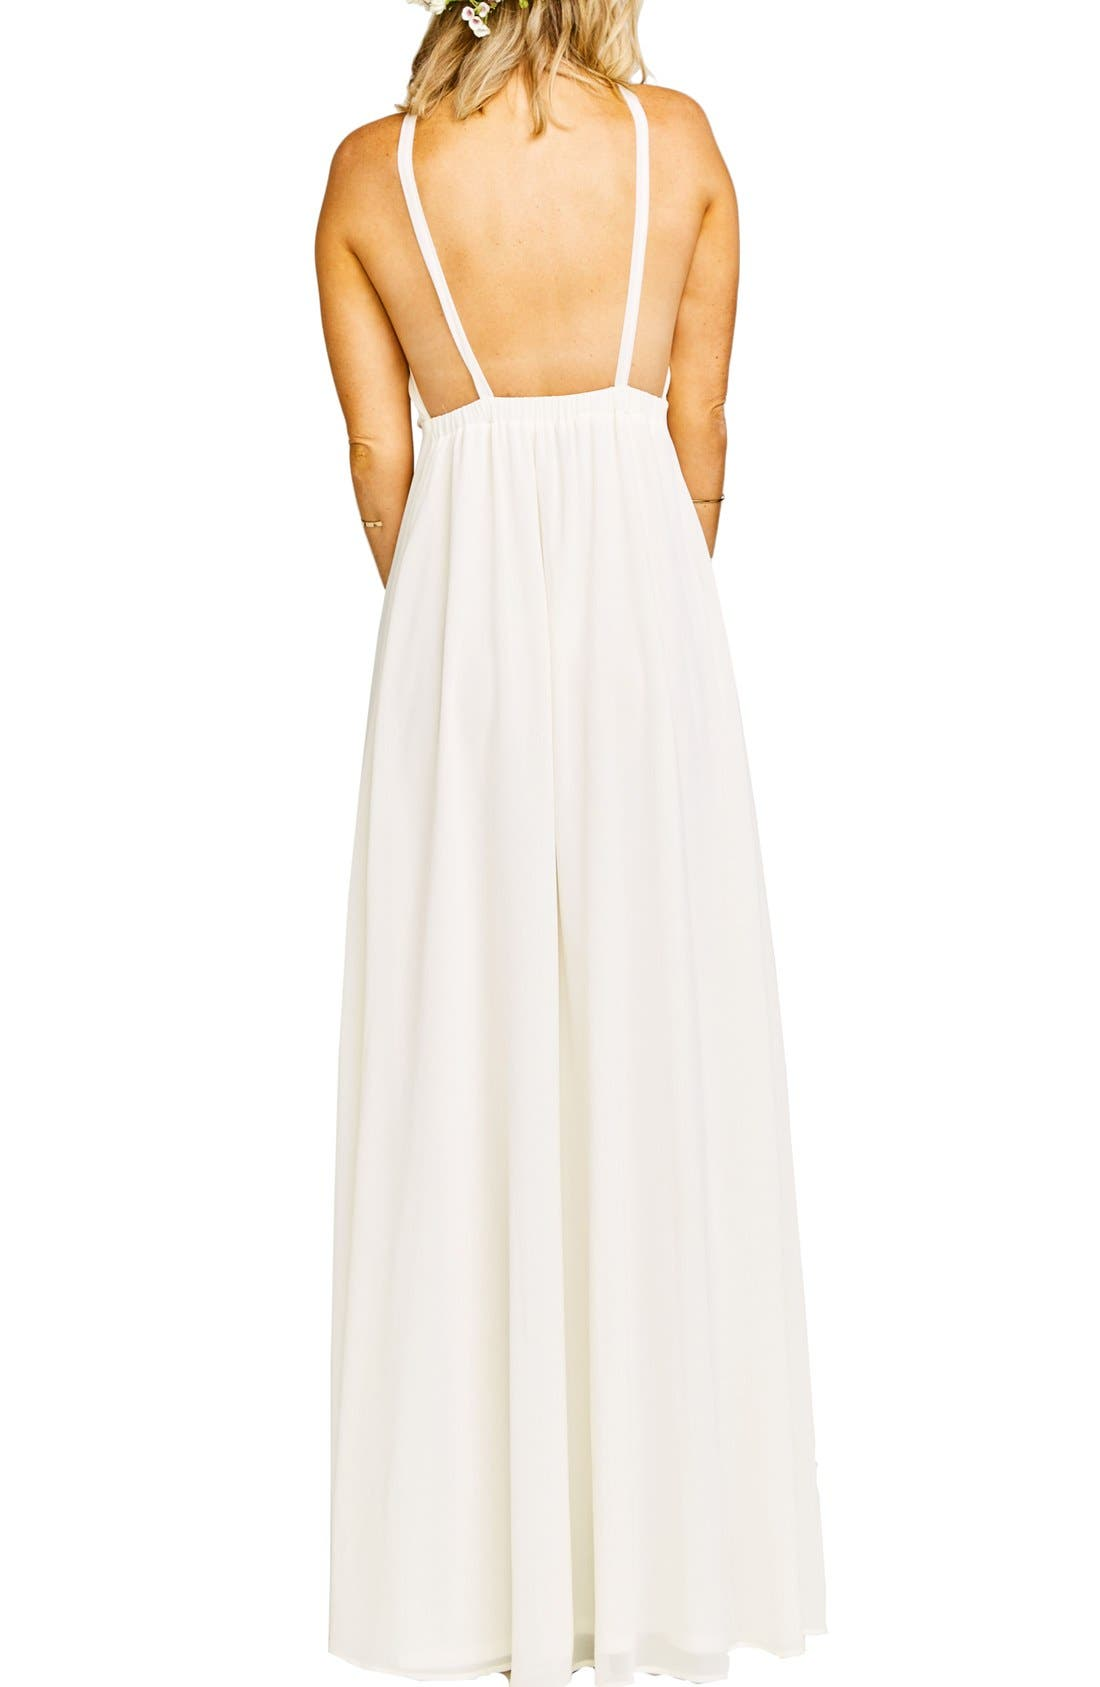 Amanda Open Back Blouson Gown,                             Alternate thumbnail 9, color,